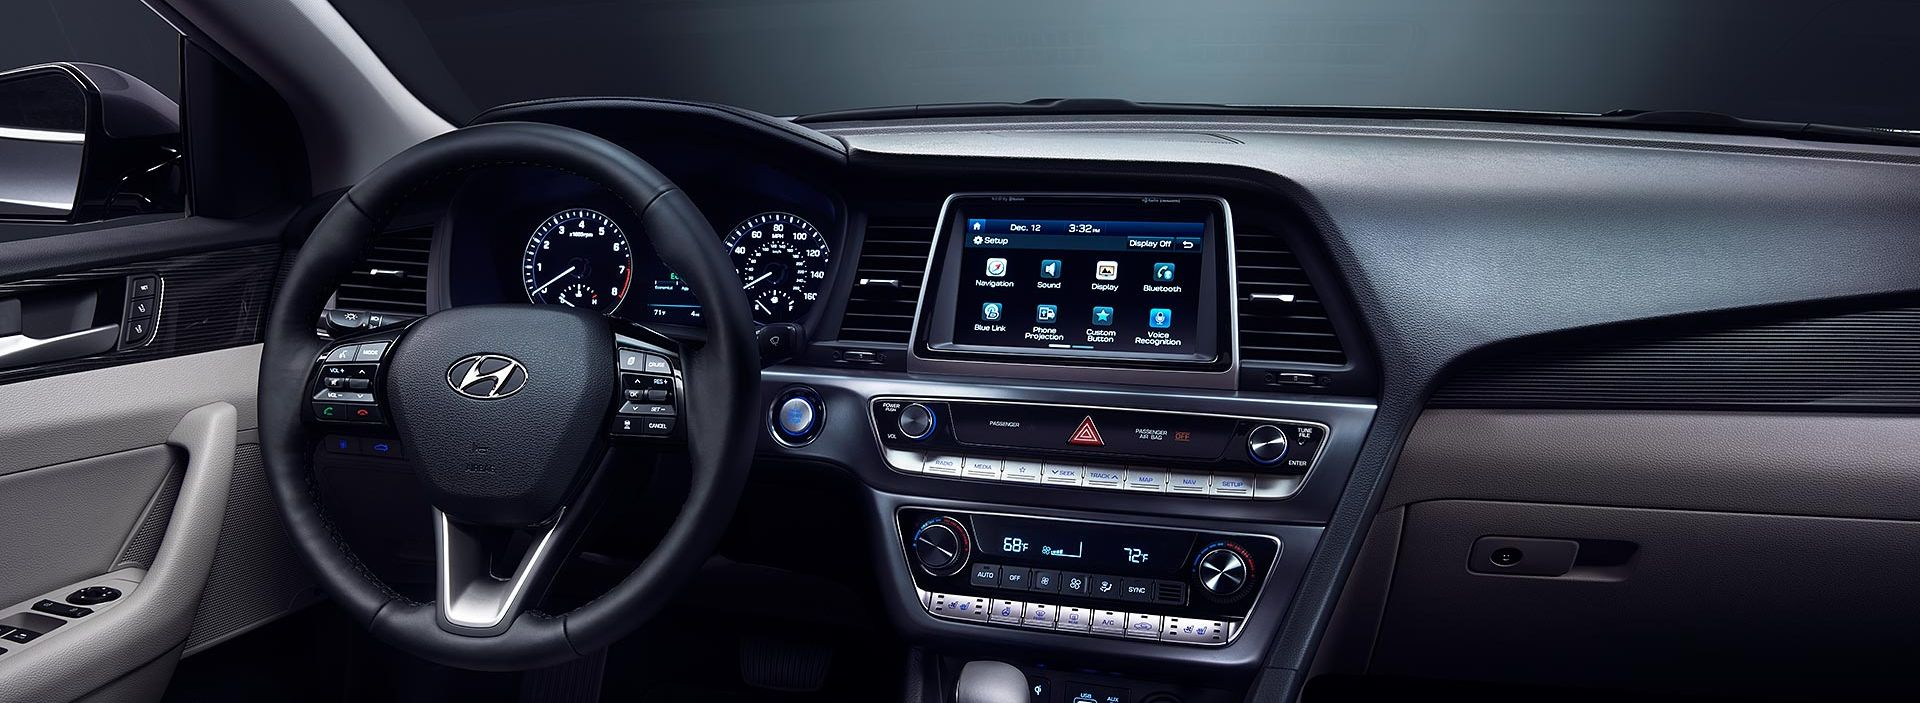 Tech-Loaded Interior of the 2019 Sonata